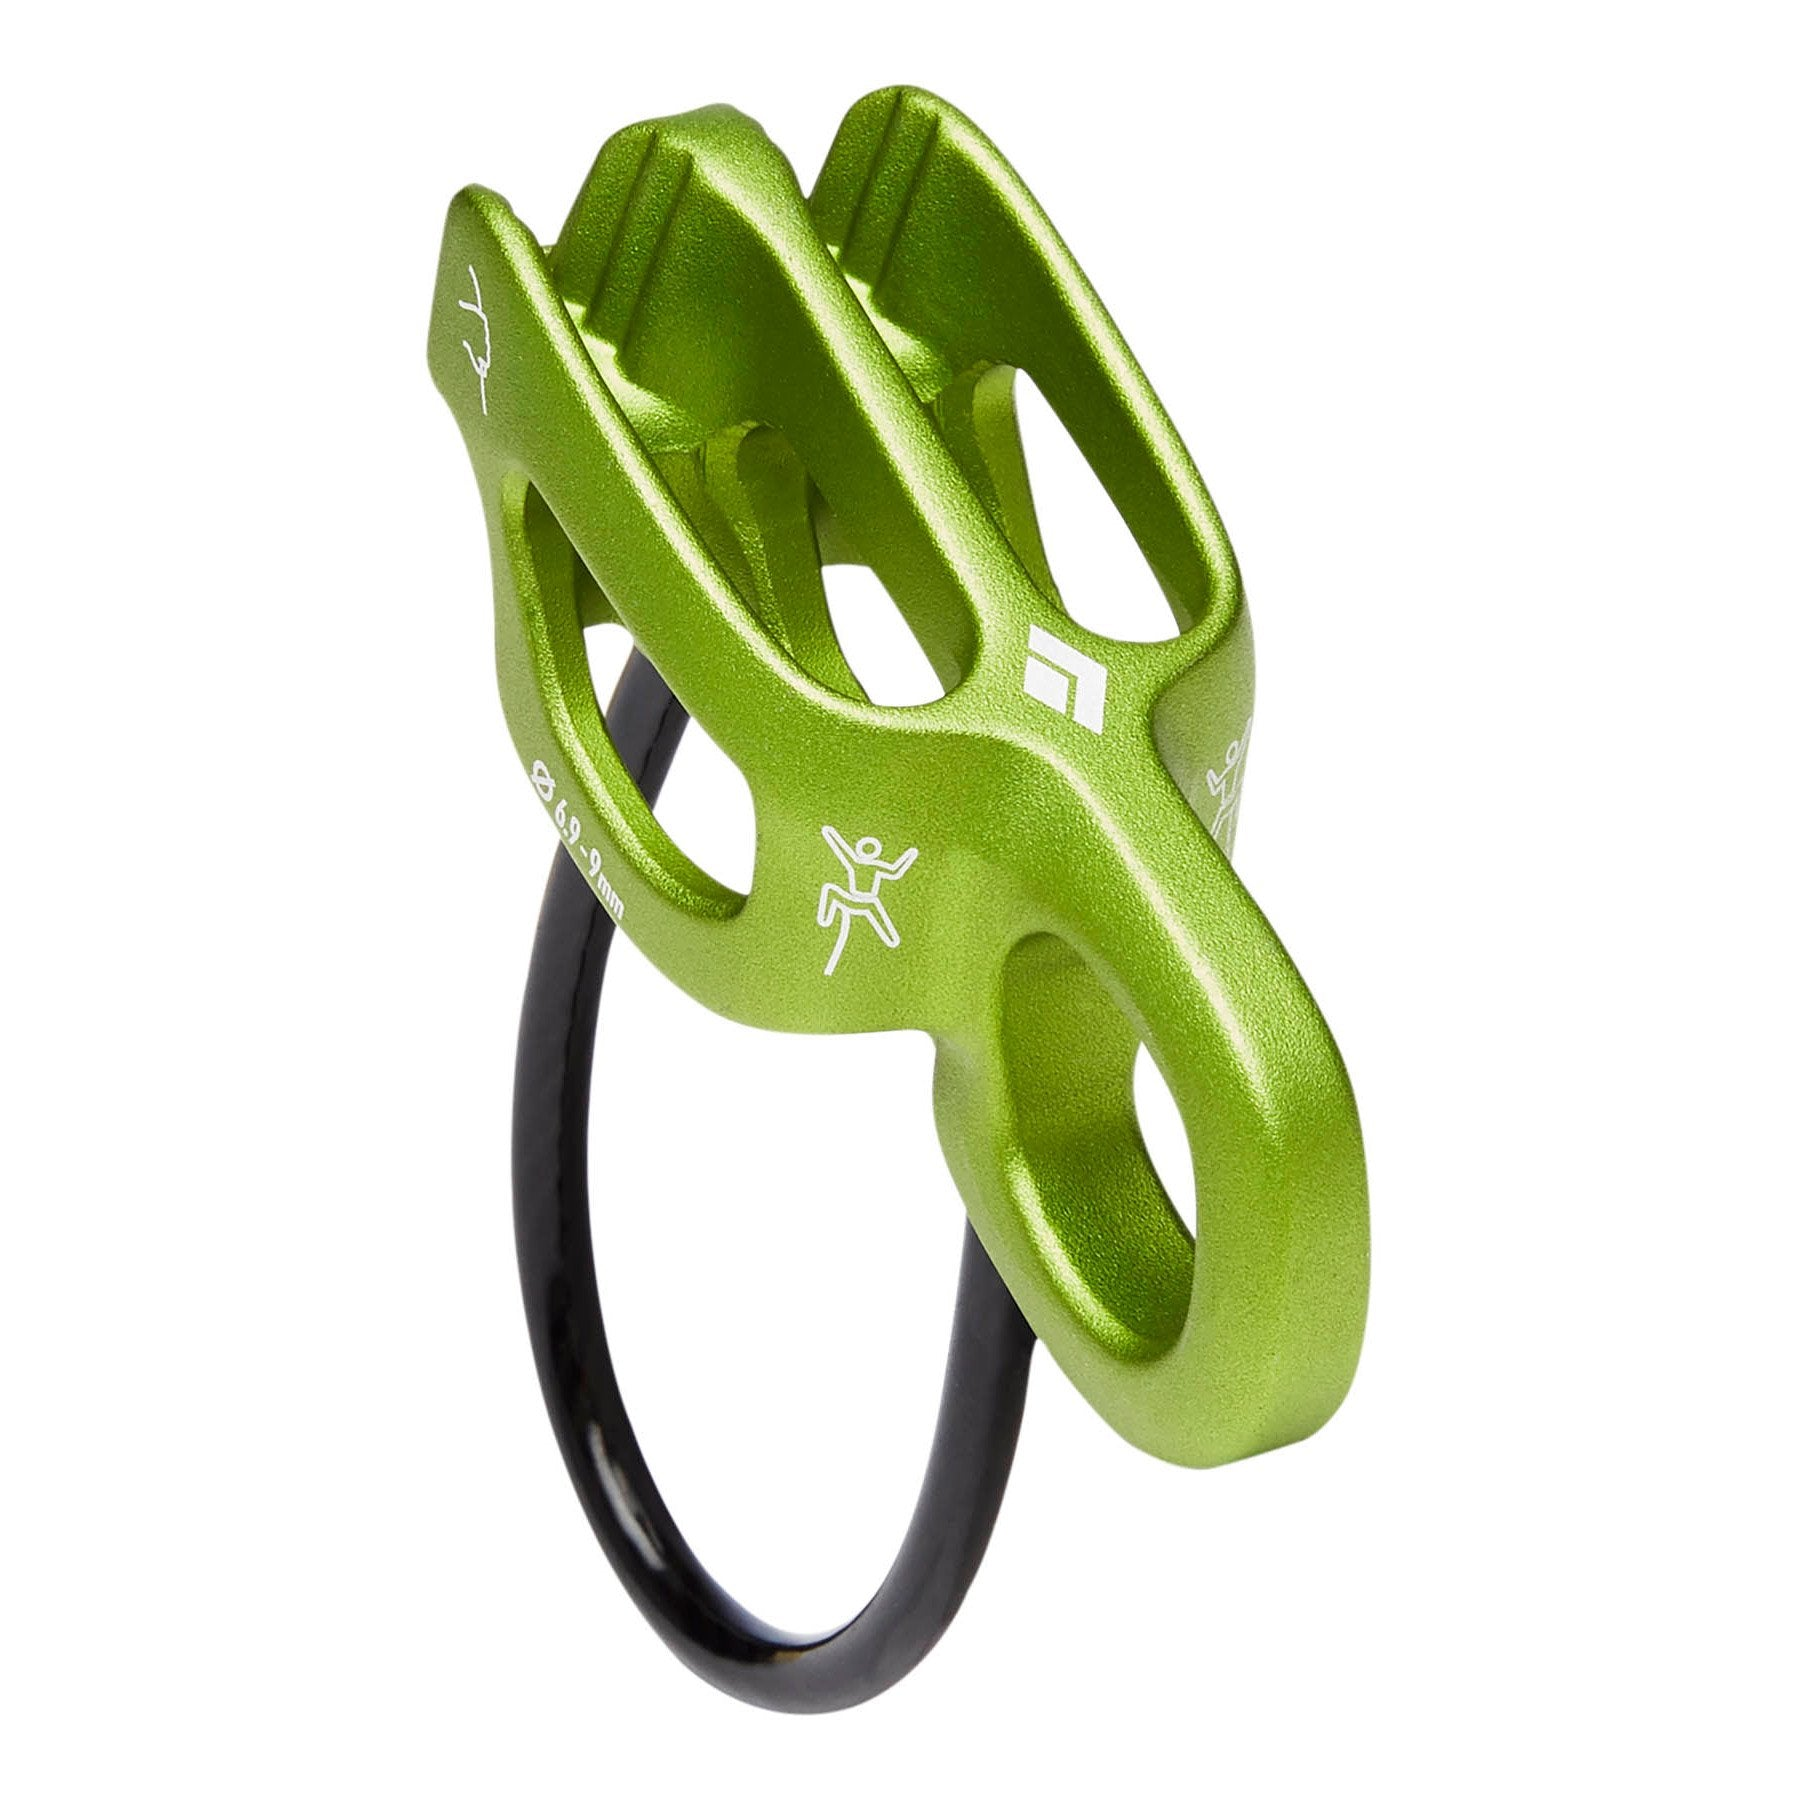 Black Diamond ATC Alpine Guide belay device, in green colour